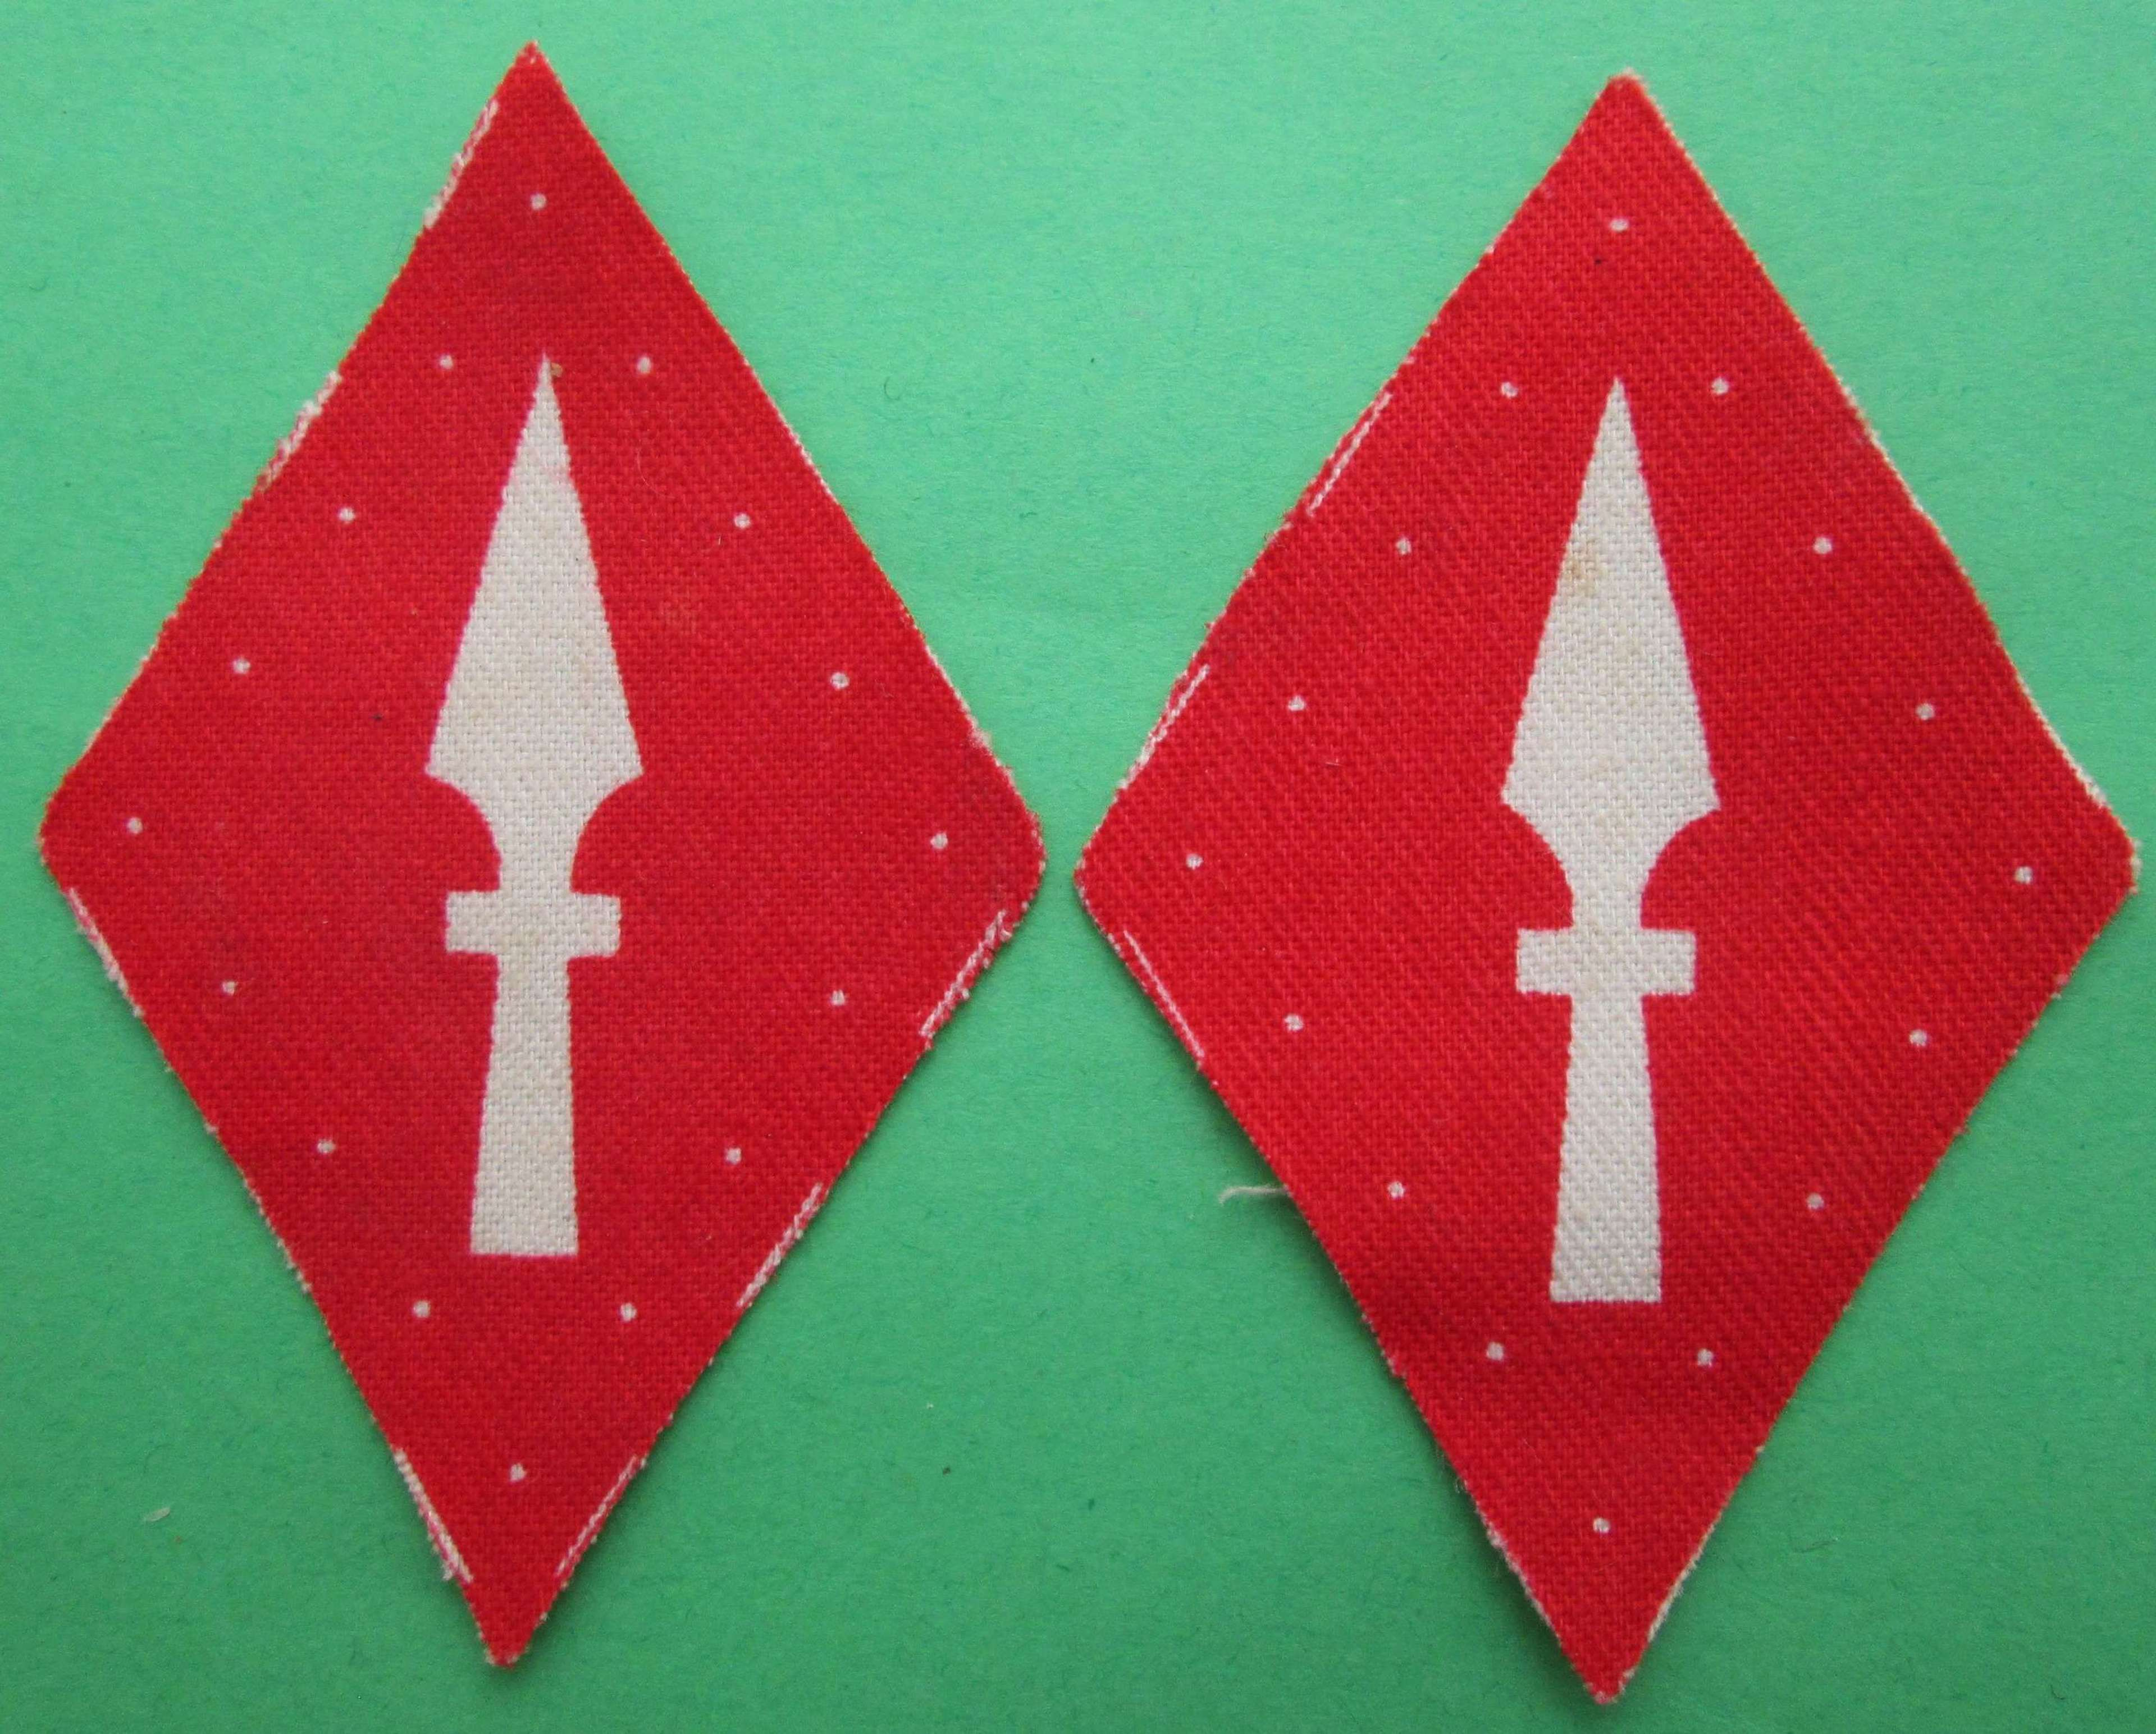 A PAIR OF 1ST CORPS FORMATION SIGNS